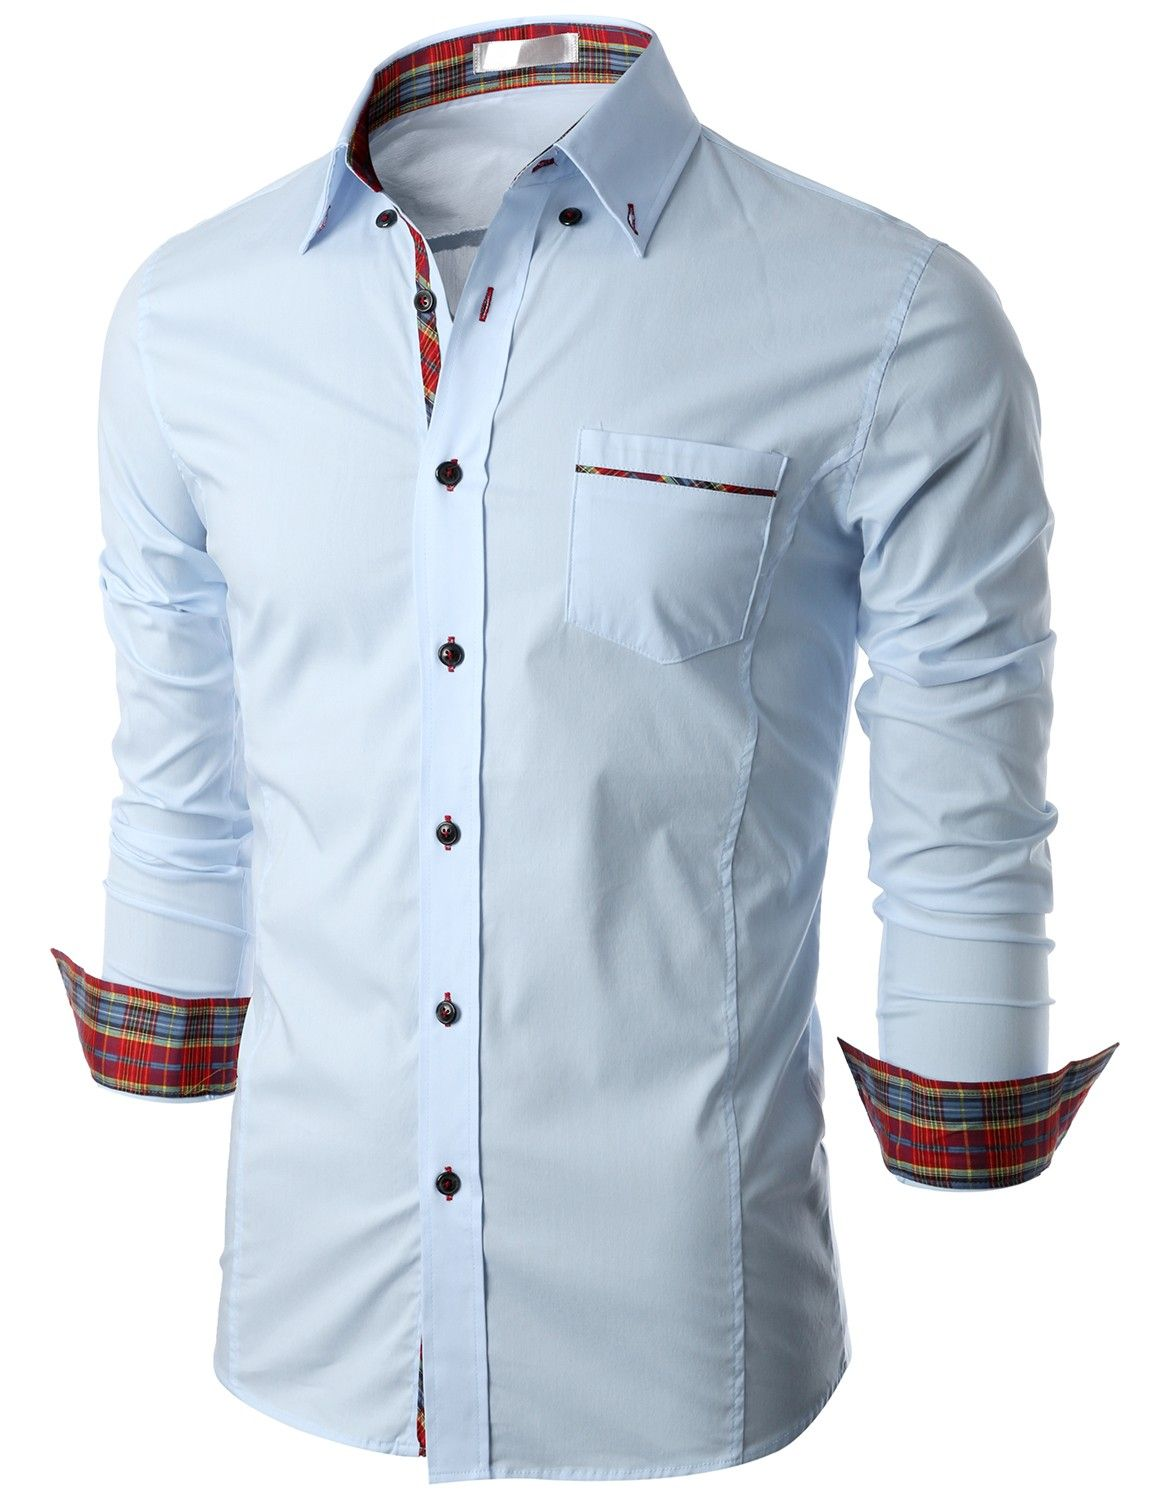 doublju mens long sleeve button down dress shirt kmtstl